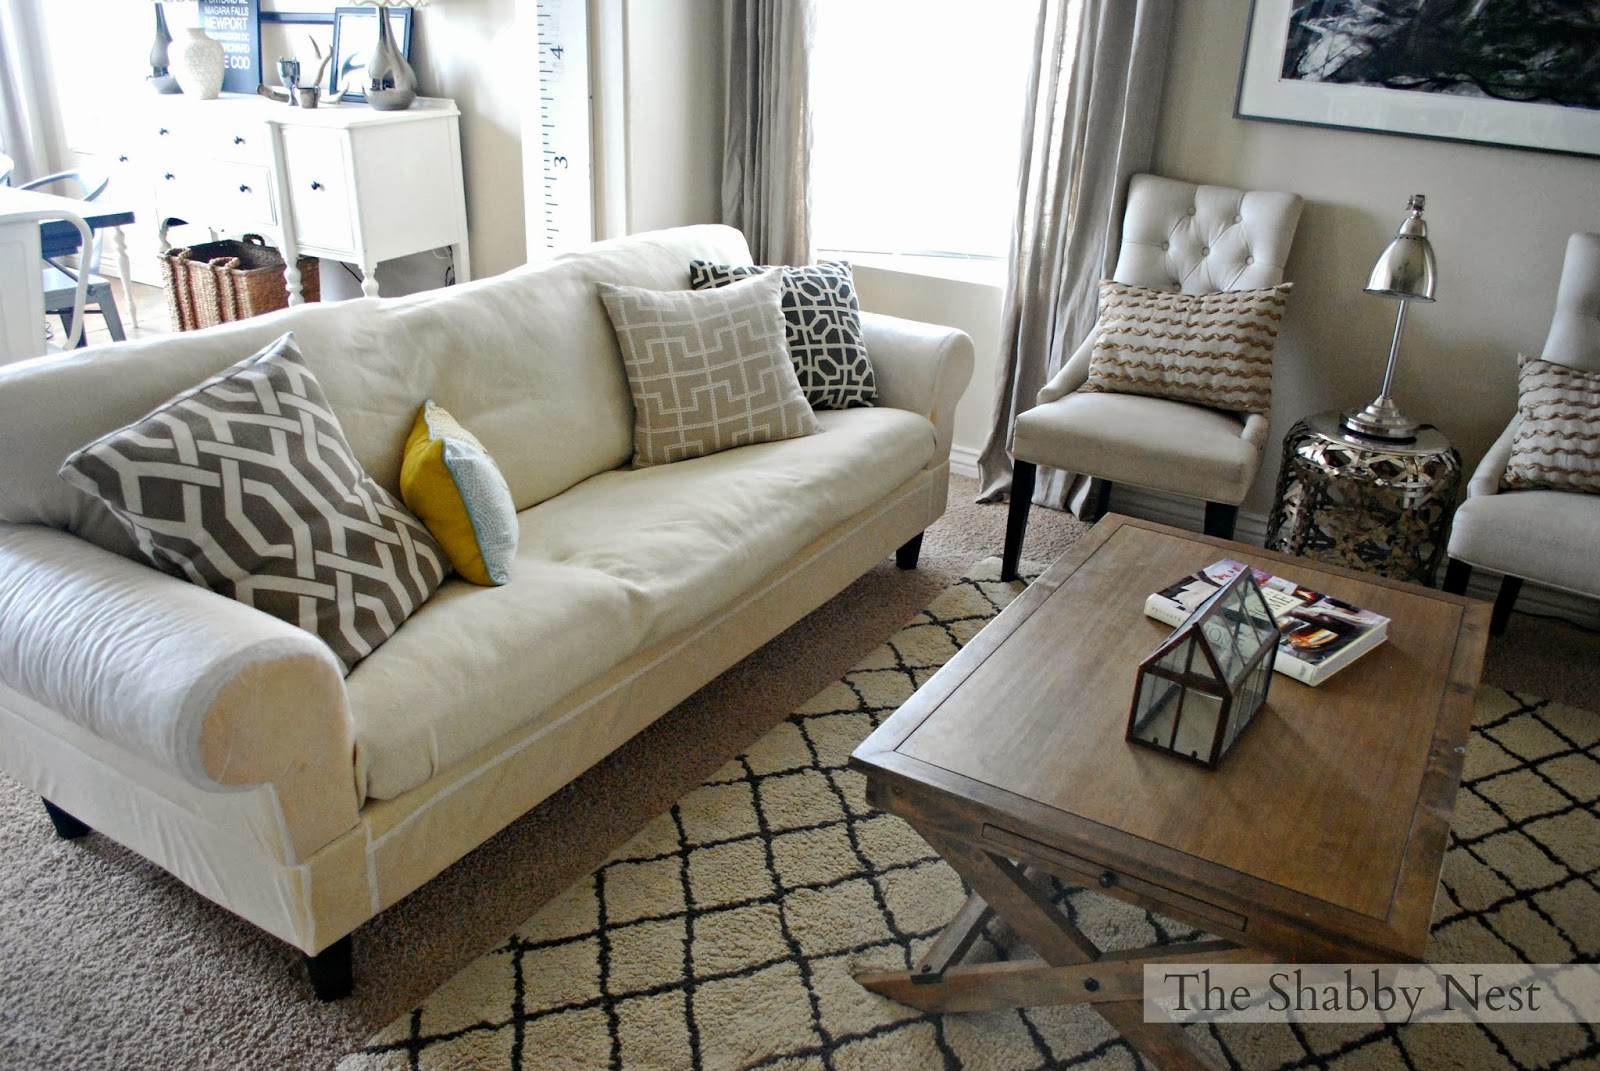 Small Space Decorating Tricks: The Shabby Nest: Small Space Decorating: A Trick~